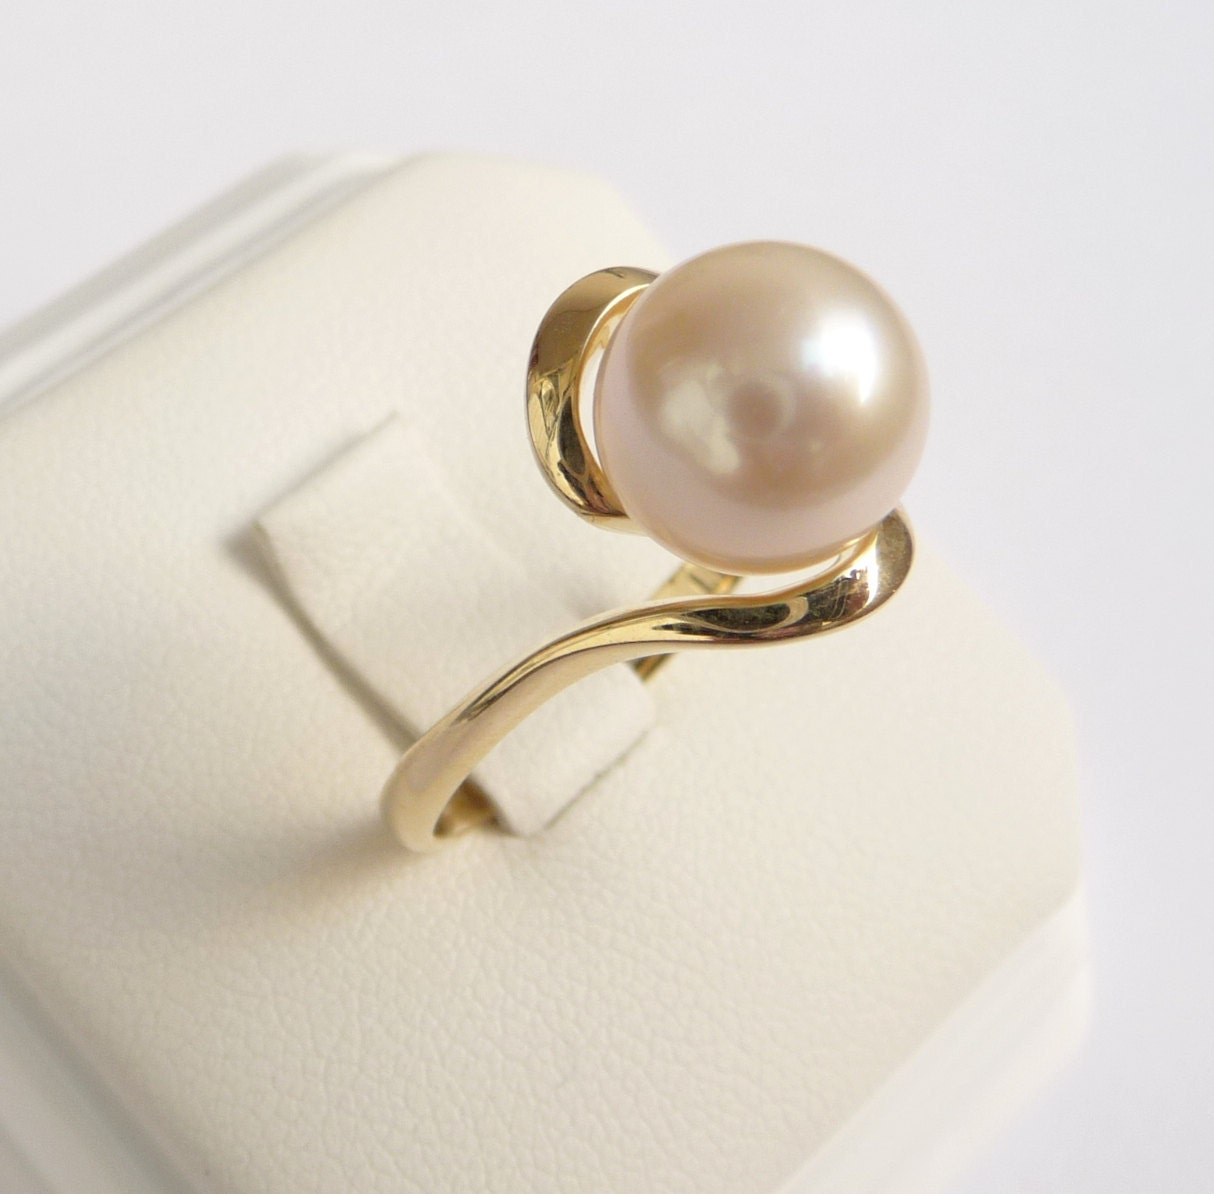 Pearl Wedding Ring: Pearl Ring Gold Ring Womens Pearl Engagement Ring